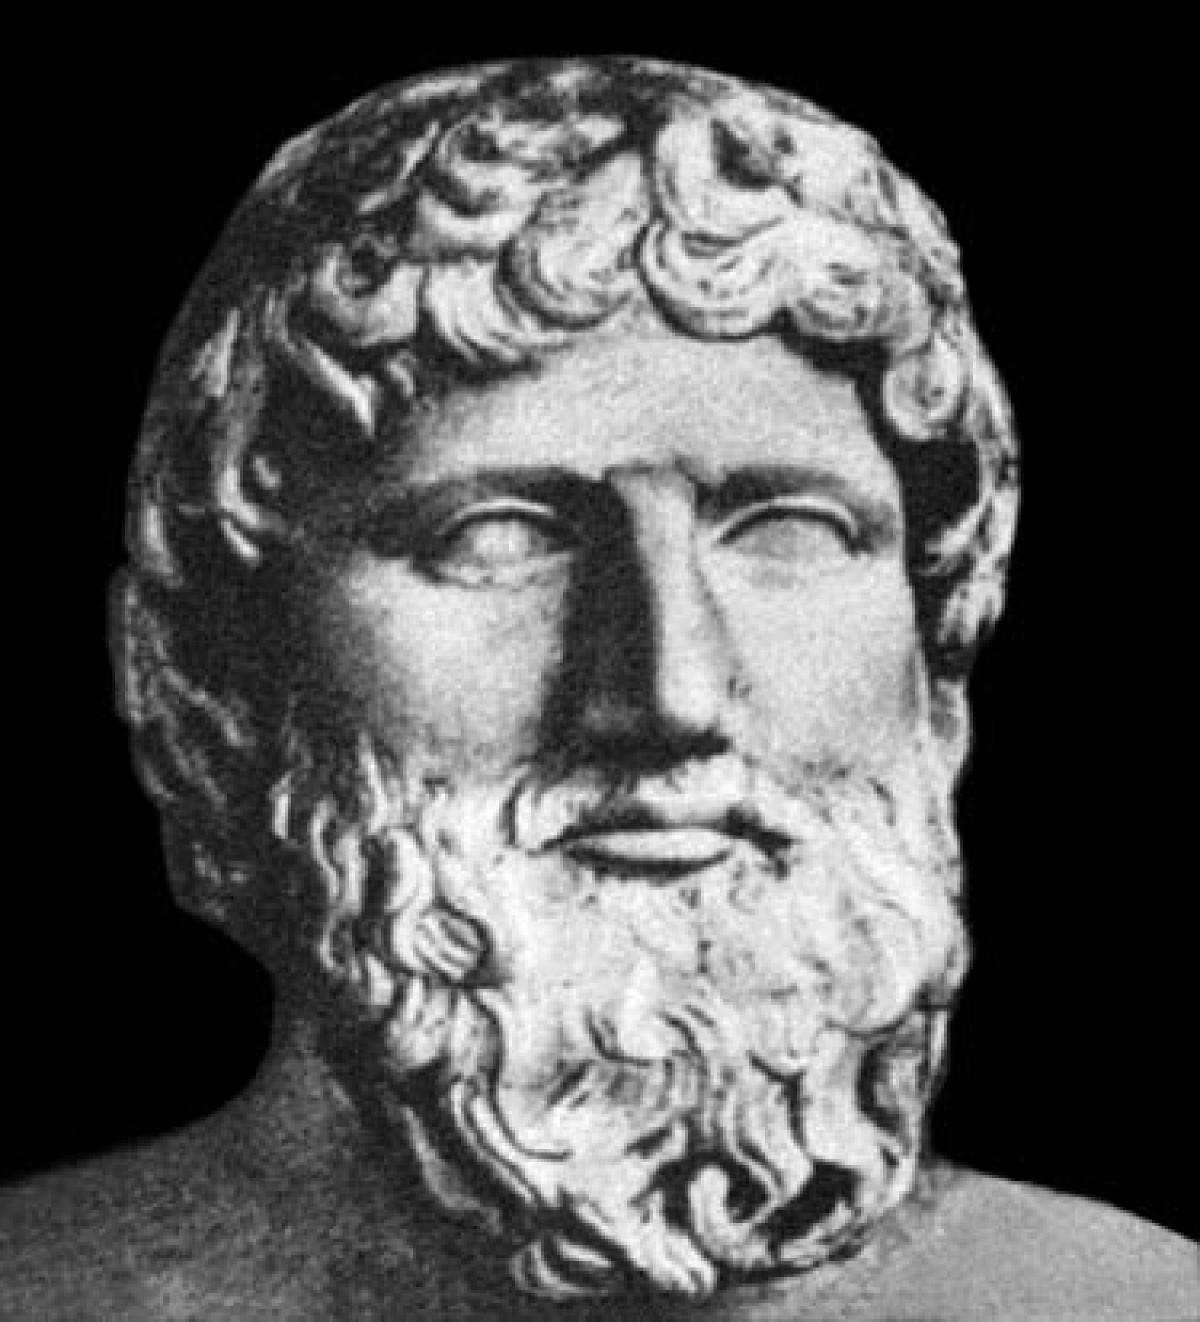 Plato's Feminist Critique by Allan Bloom